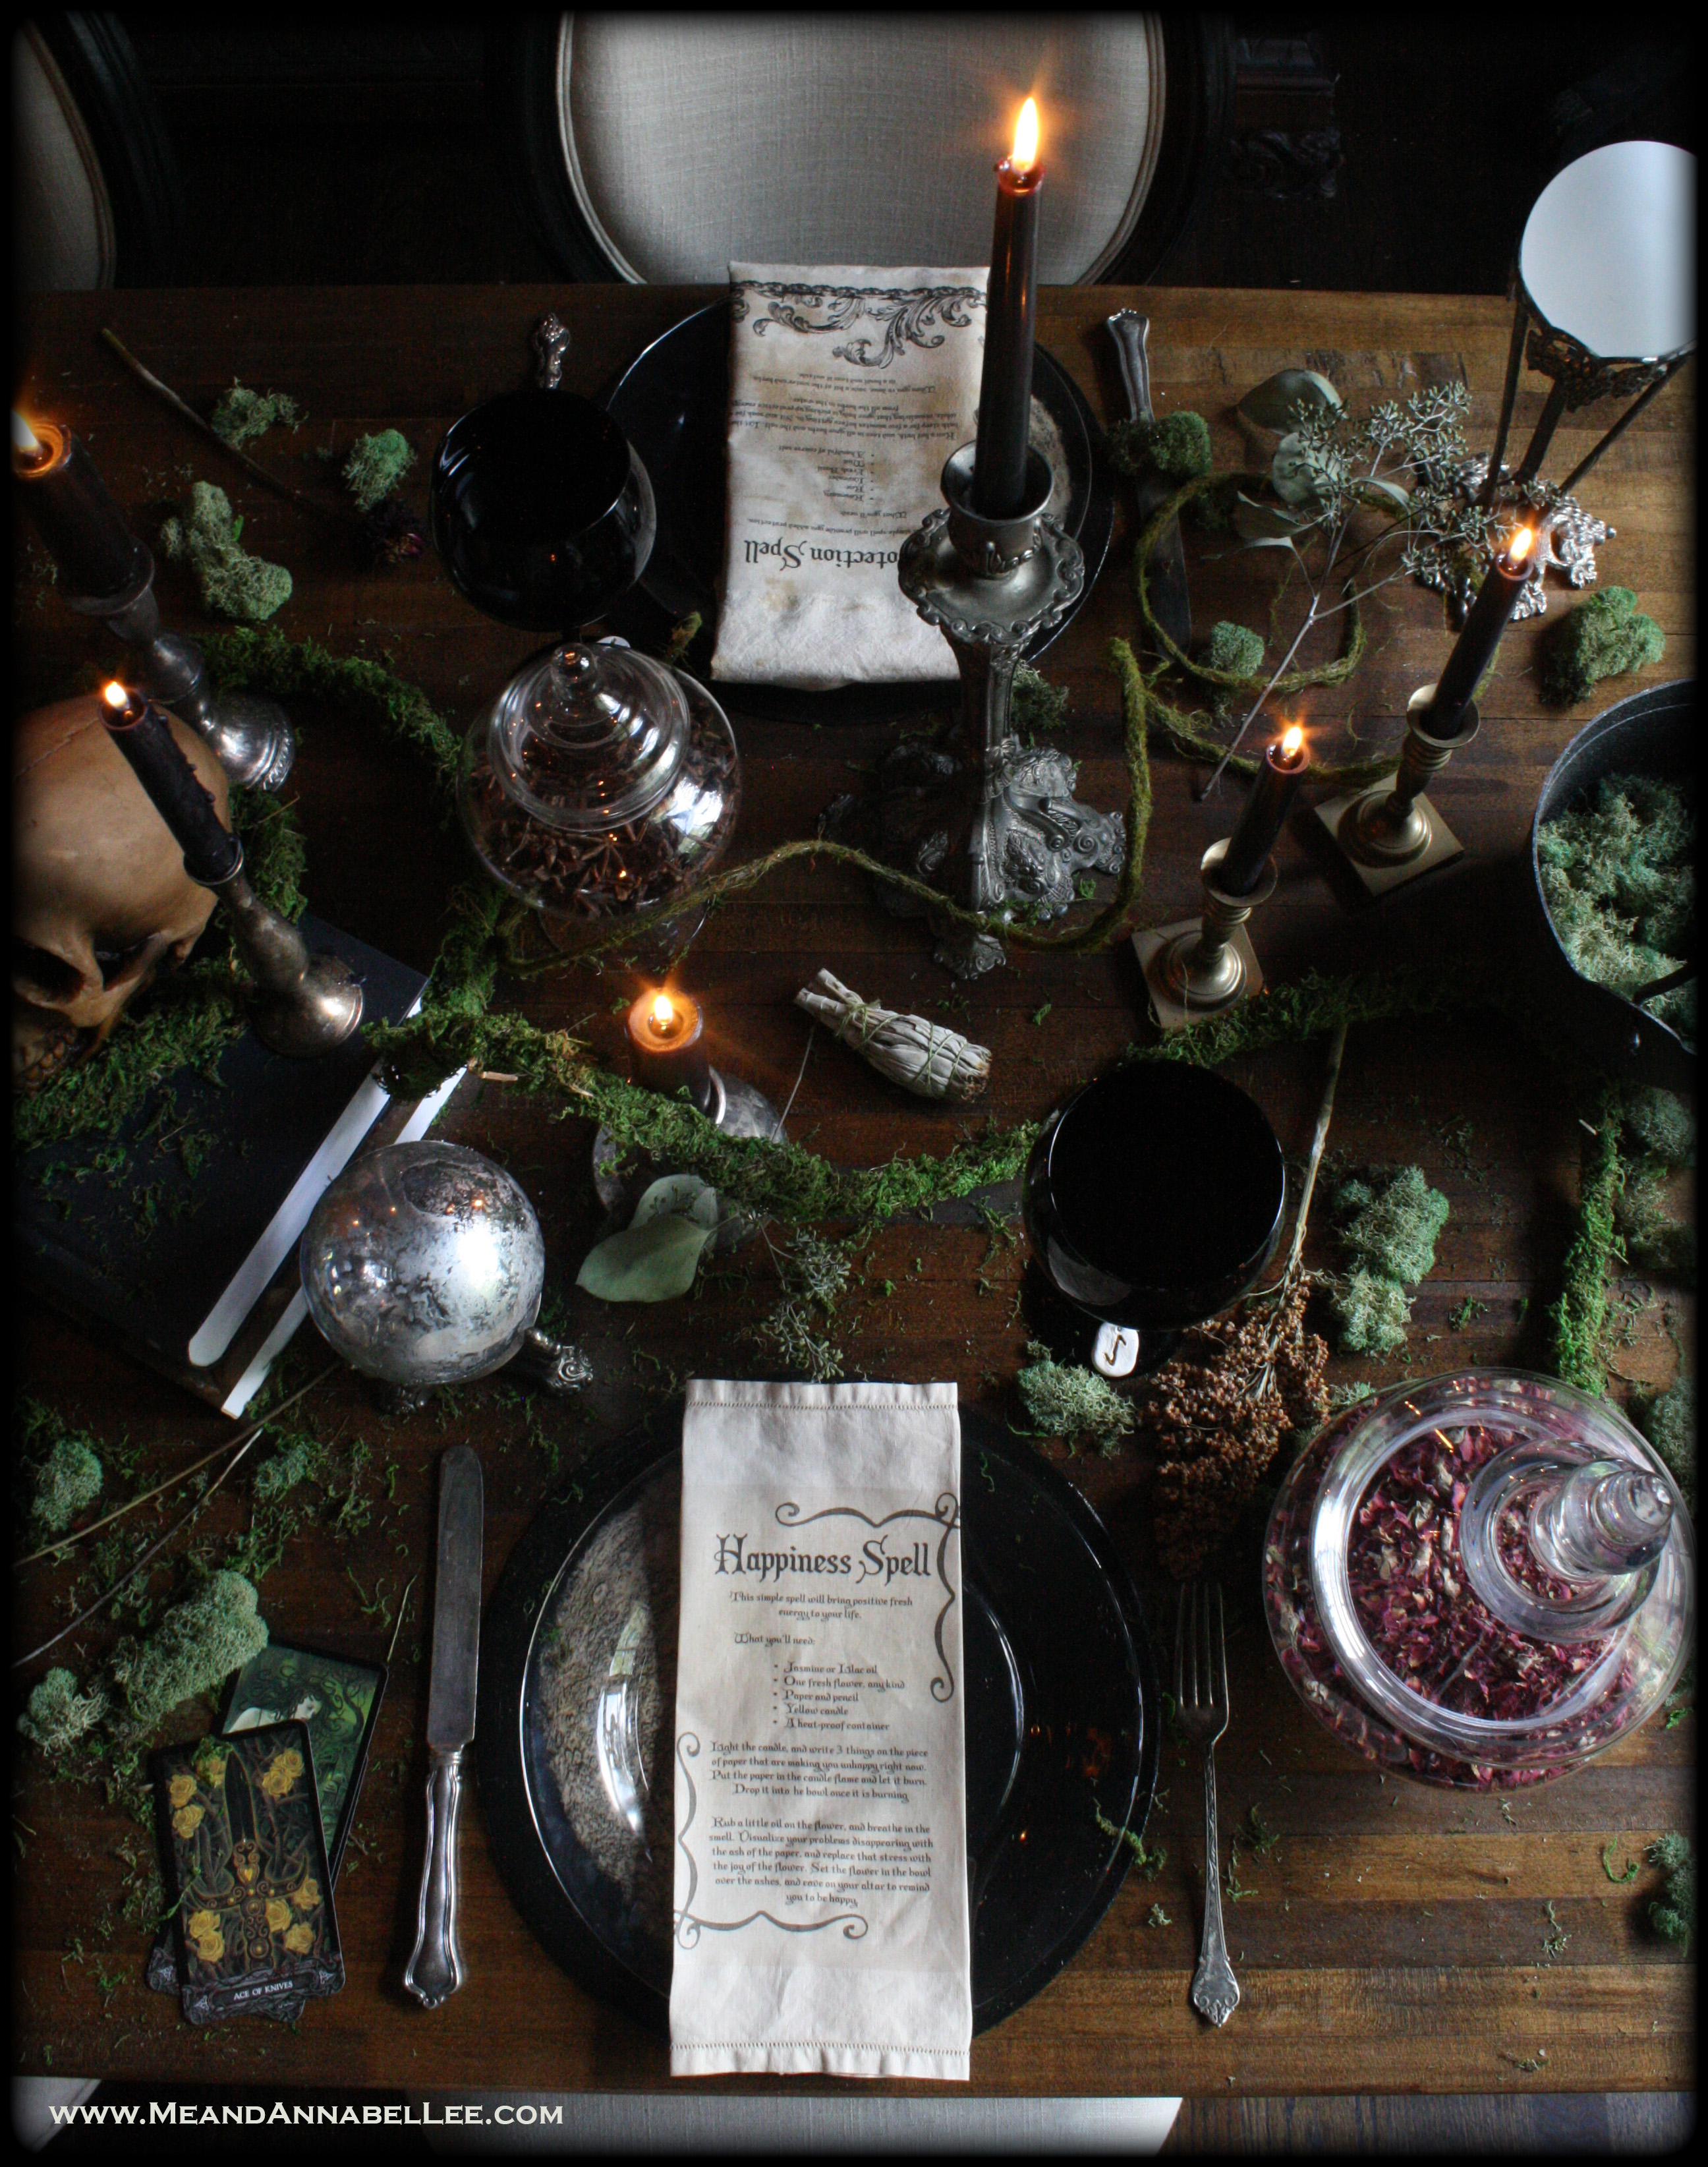 Halloween Dinner Table Setting.Diy Vintage Tea Stained Witches Spell Napkins Halloween